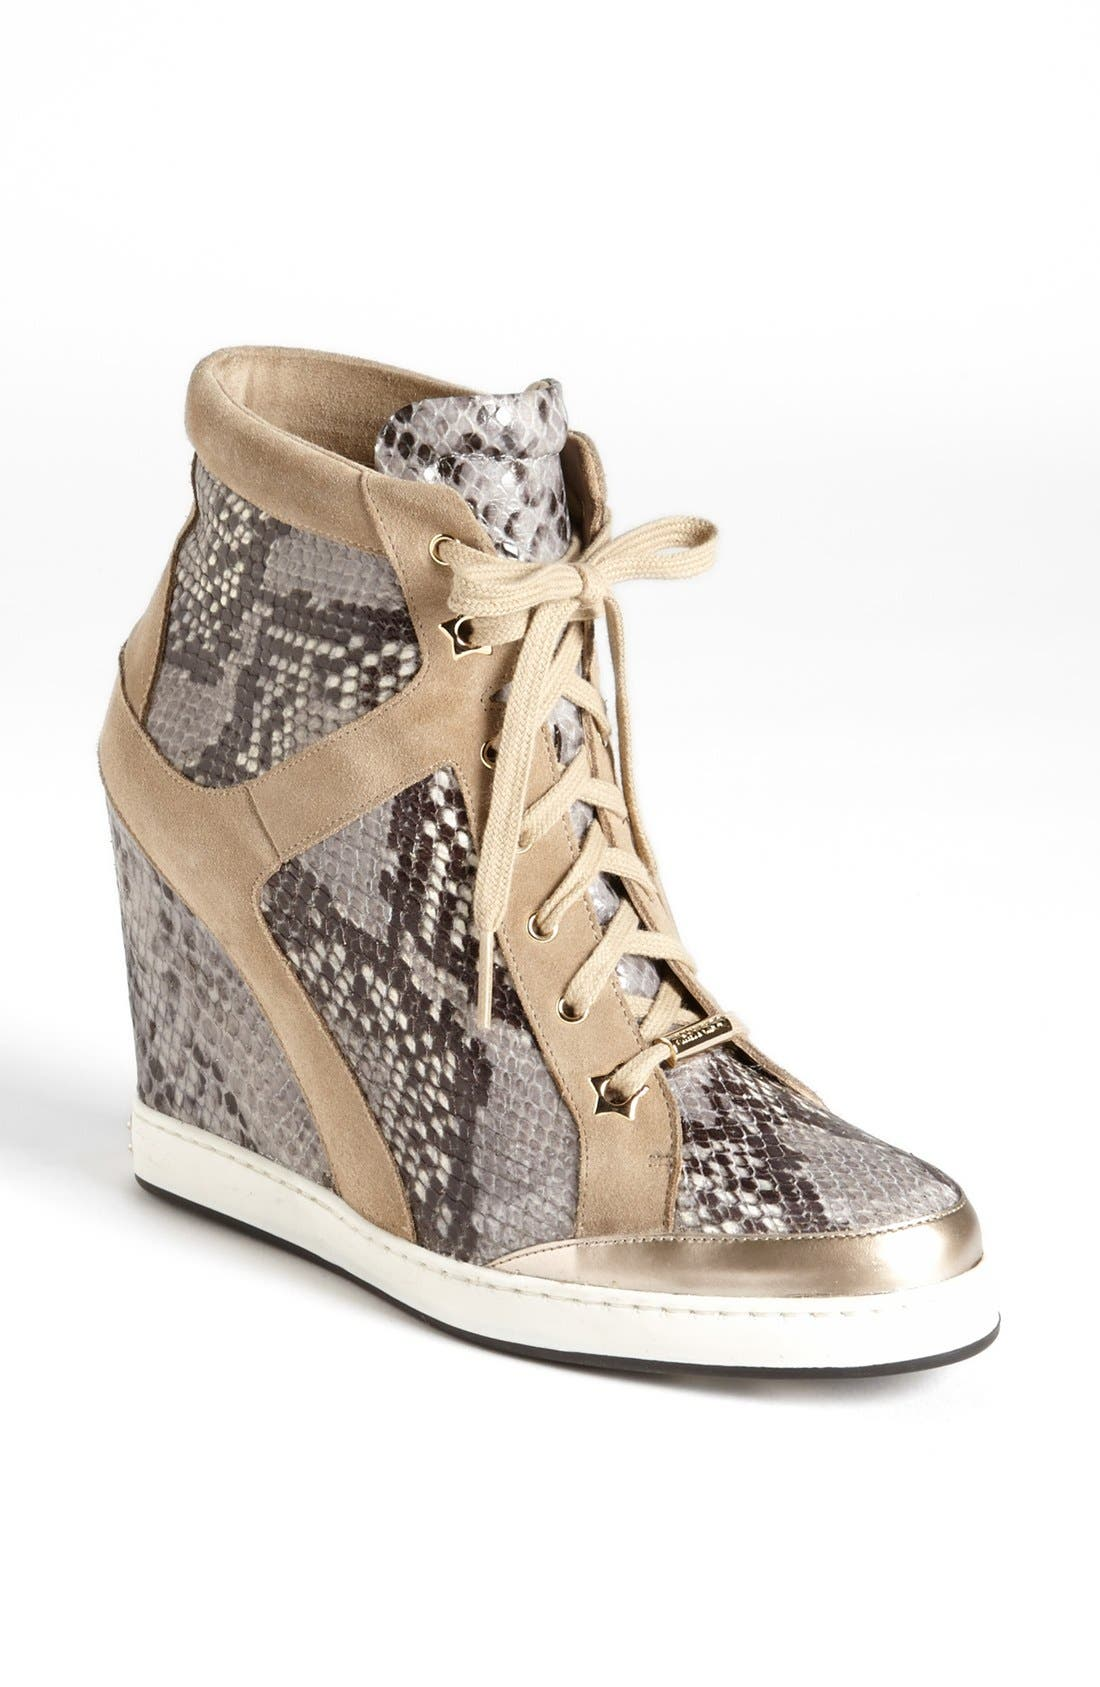 Main Image - Jimmy Choo 'Panama' Wedge Sneaker